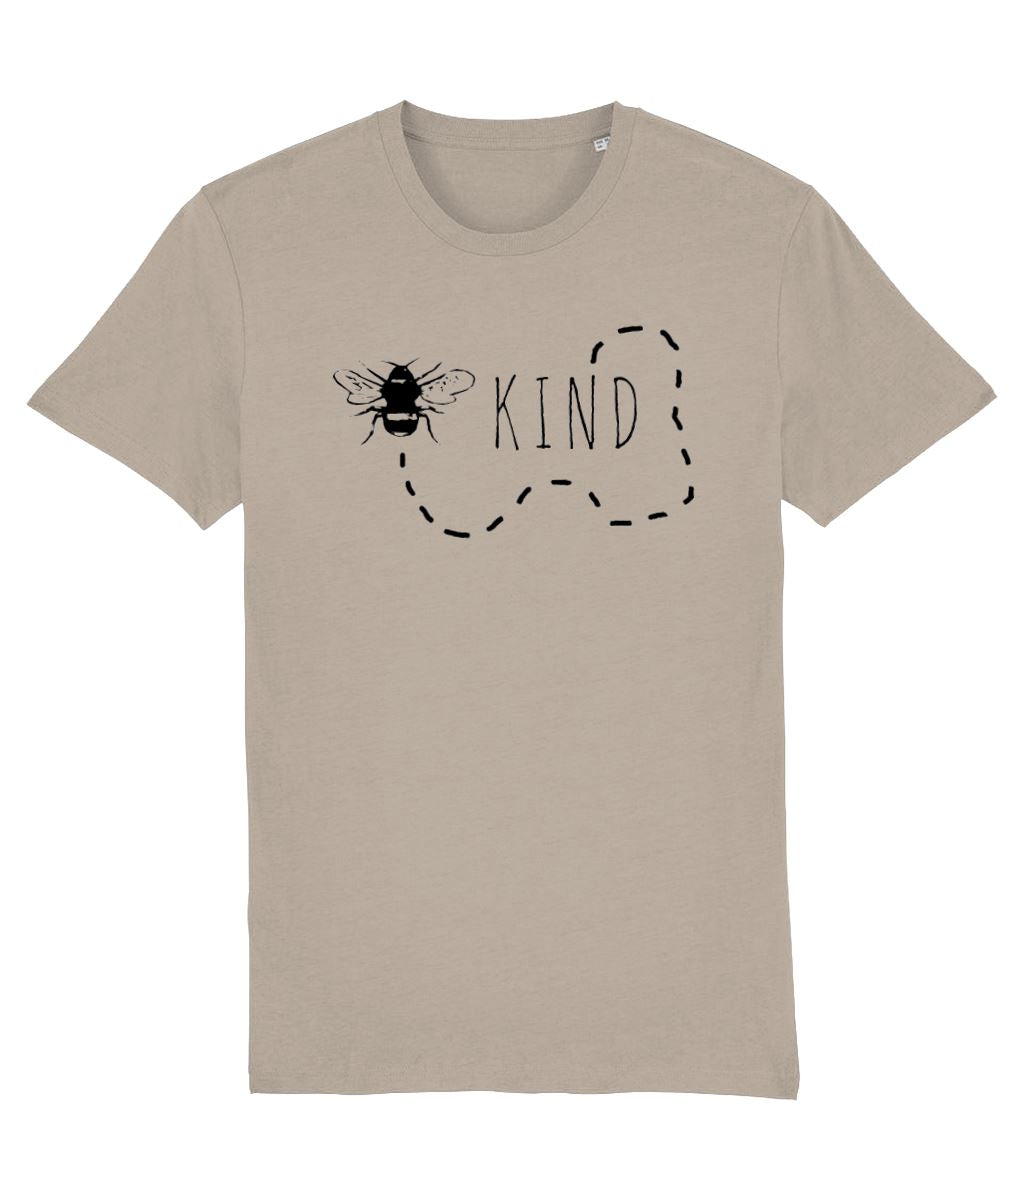 """Bee Kind"" Vegan T-Shirt - 100% Organic Cotton (Unisex) Clothing Vegan Original Desert Dust X-Small"